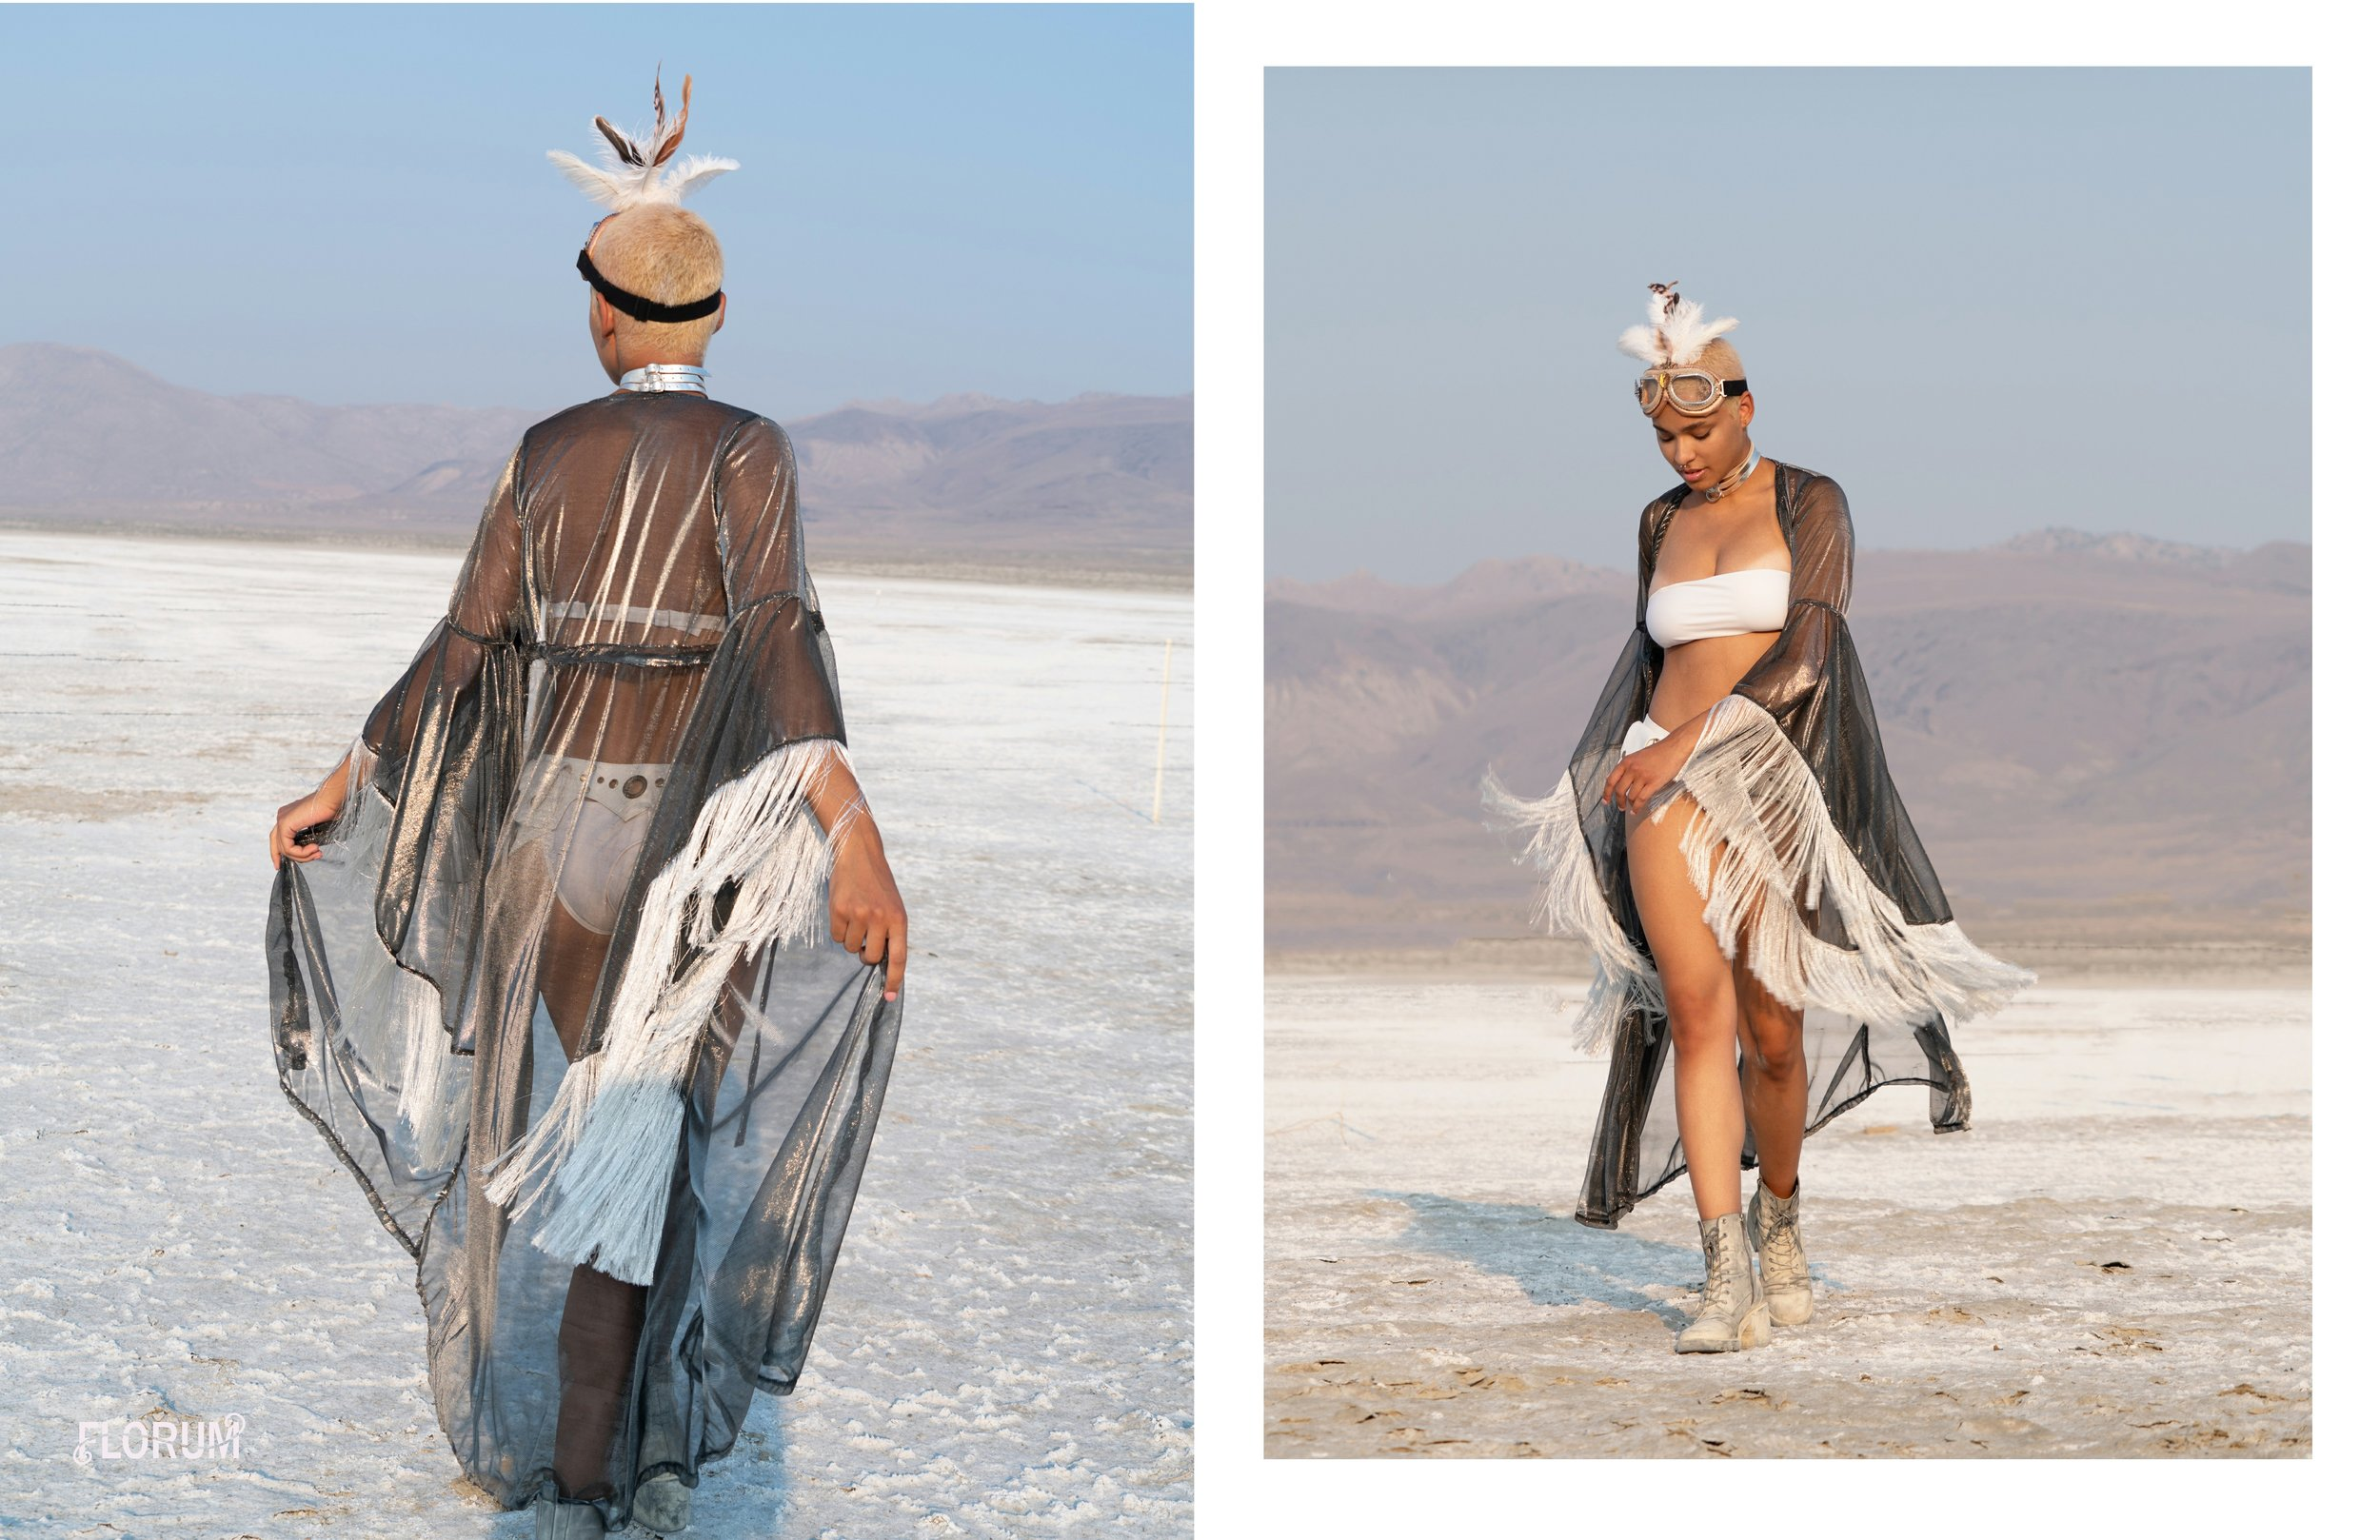 Playa Style Guide for burning man fashion -Florum Fashion Magazine creative director Noelle Lynne - photographed by Joy Strotz - braids and makeup by Rosa Mercedes ethical - sustainable22.jpg